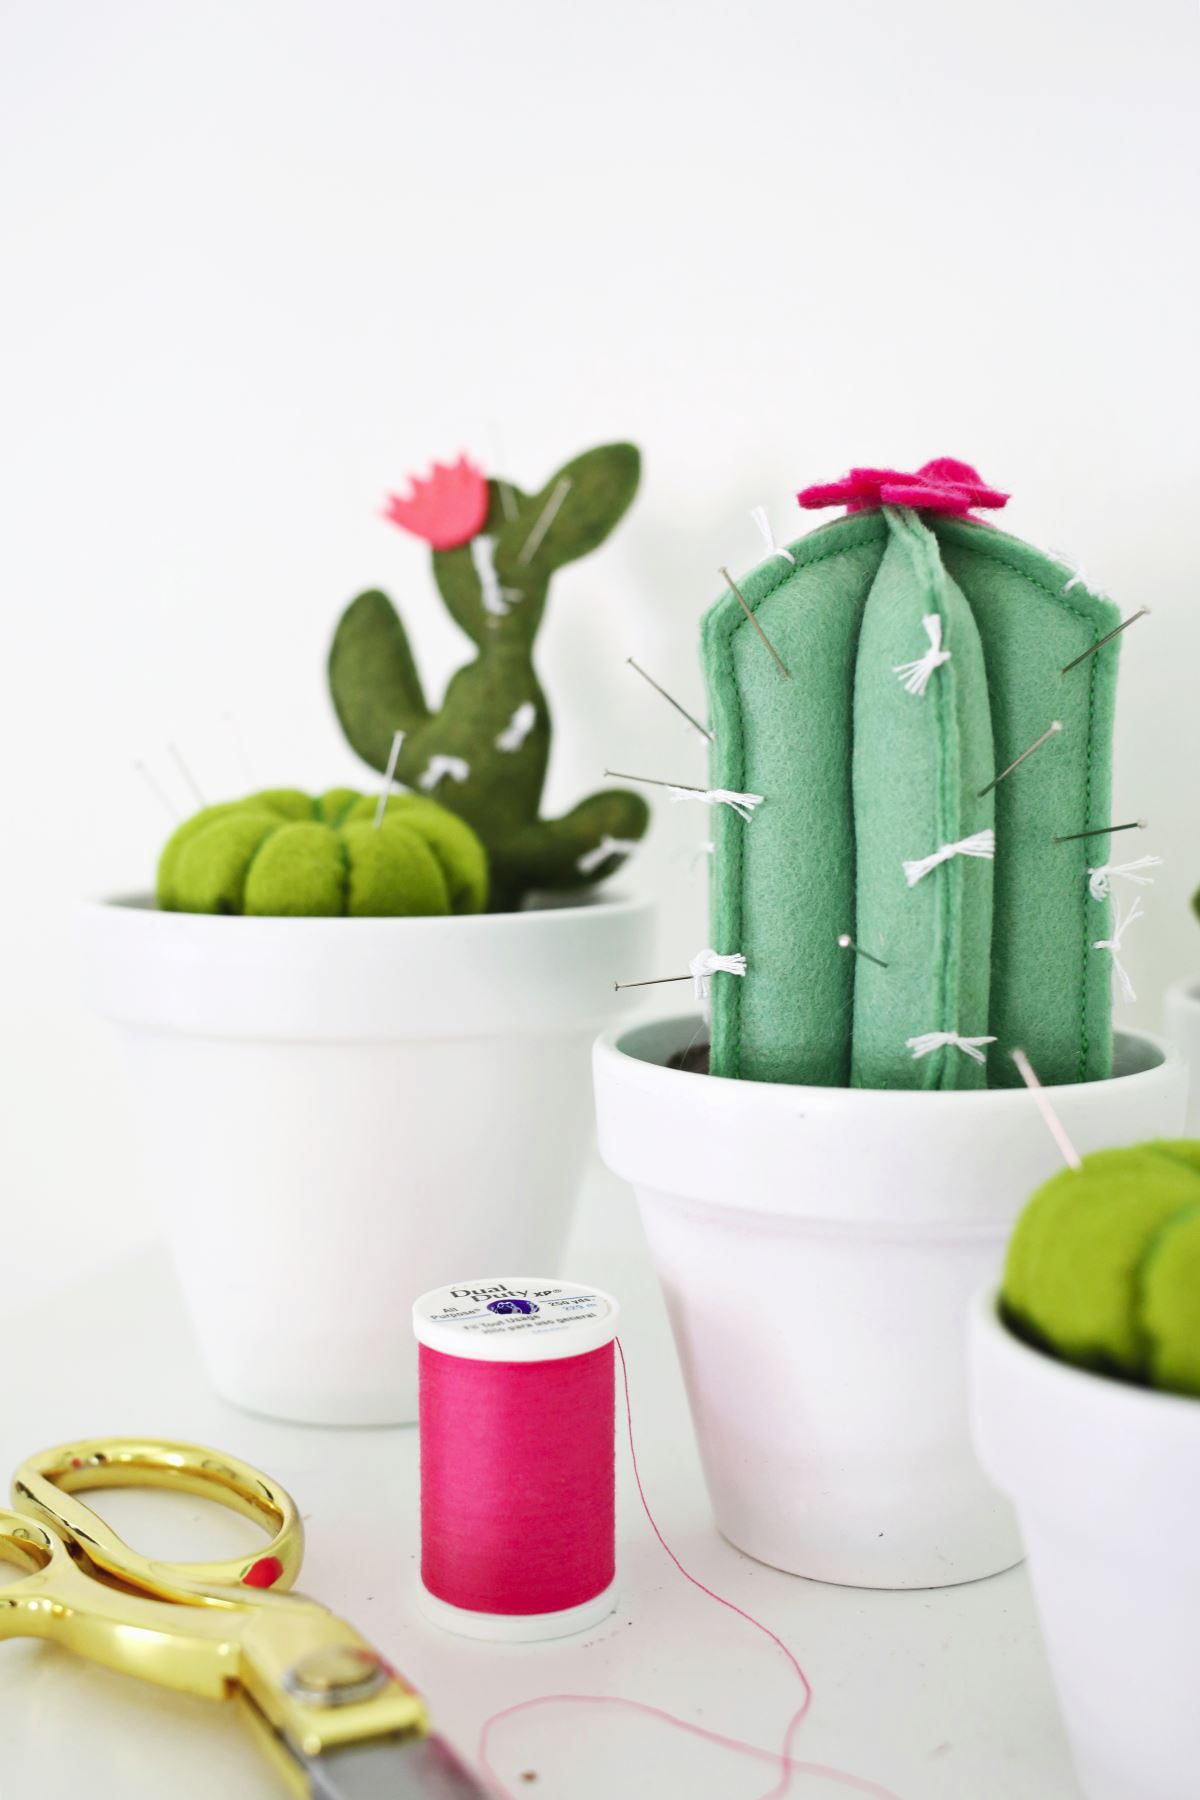 Cactus pincushions from A Beautiful Mess